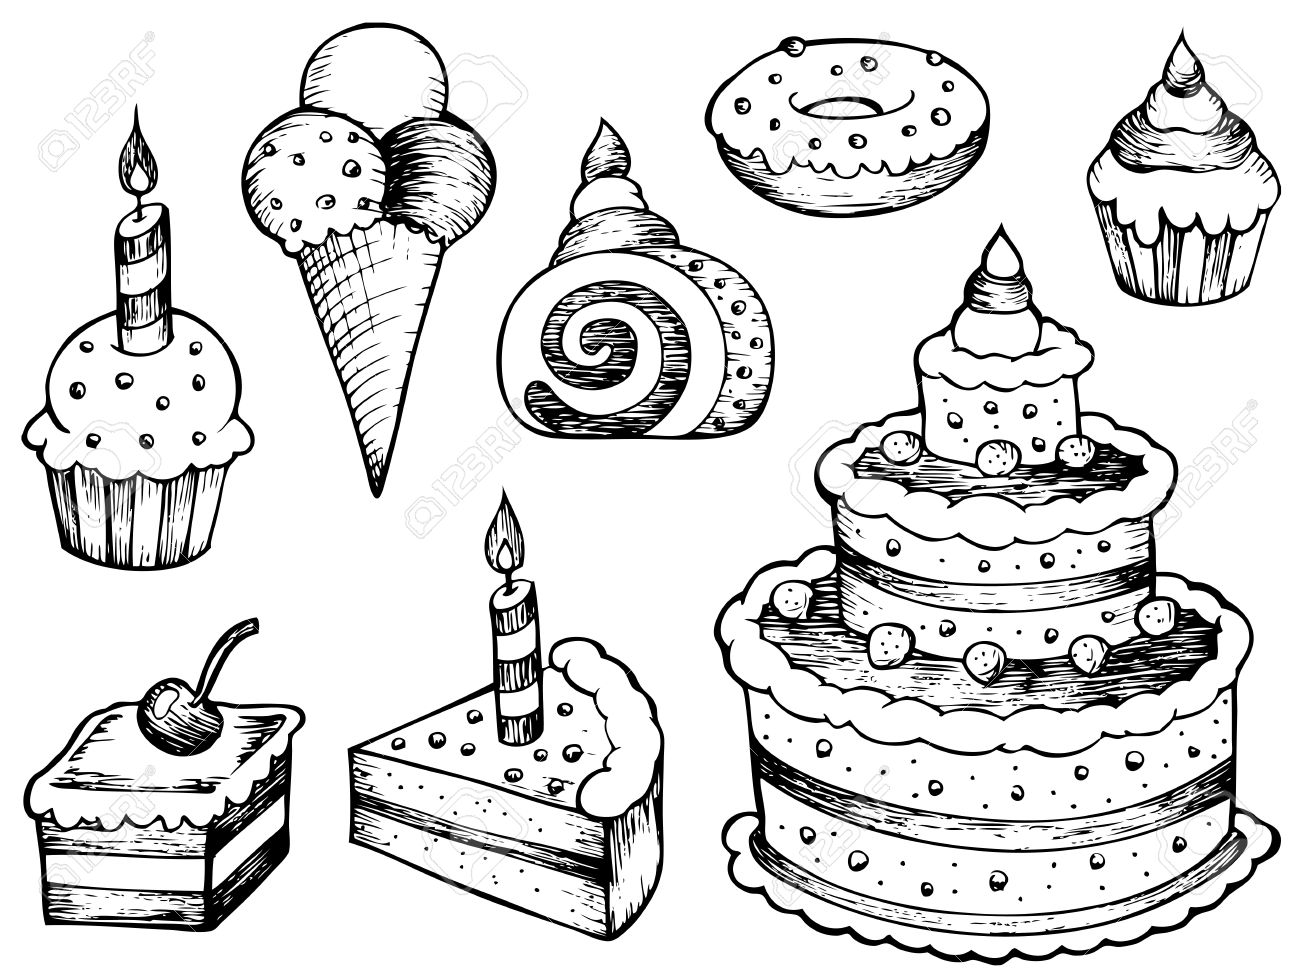 1300x979 Cakes Drawings Collection